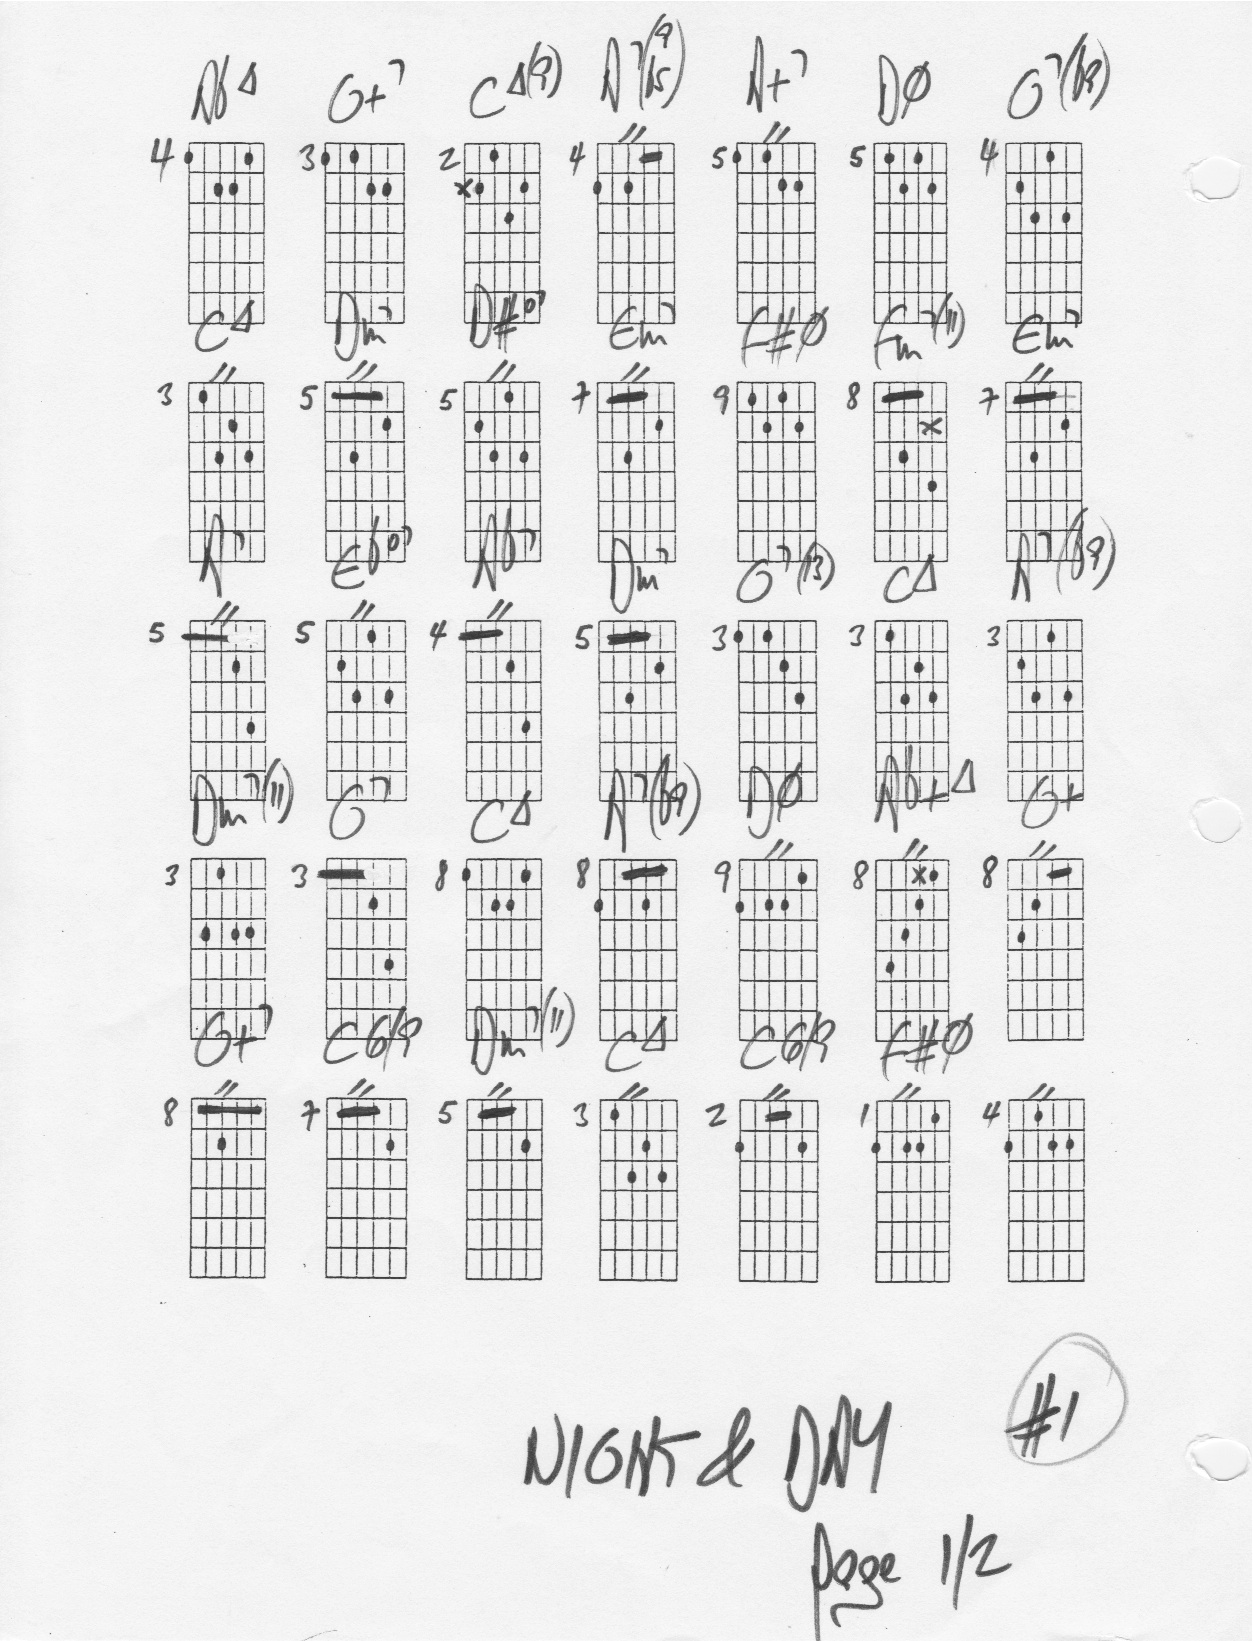 Night And Day The Chord Changes